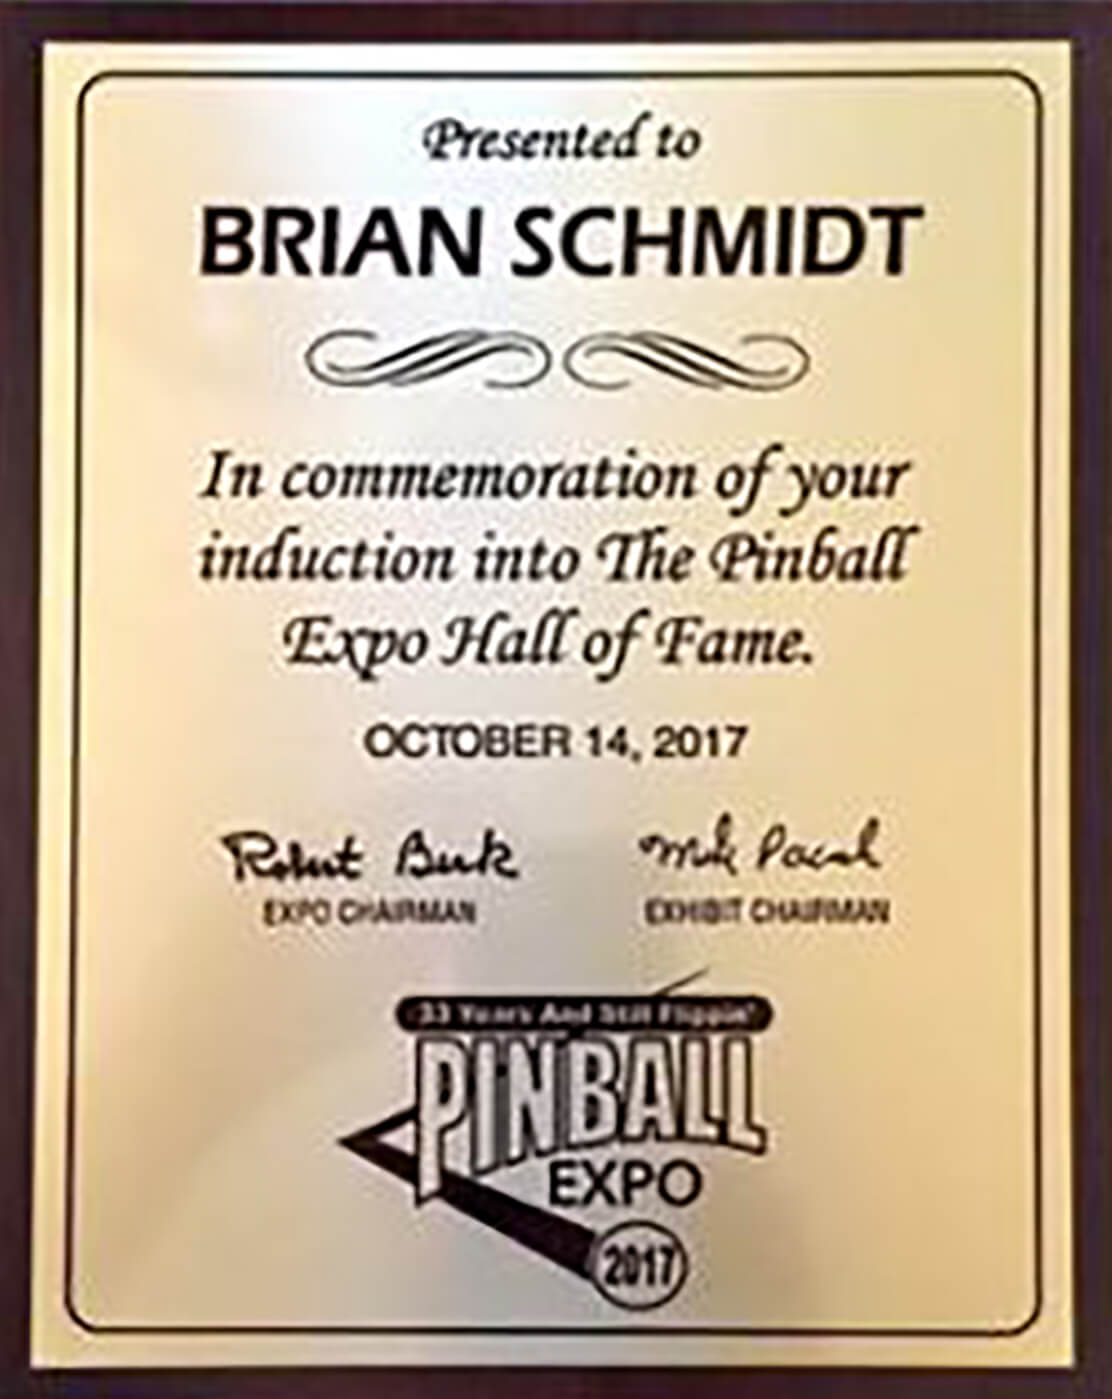 Picture of the plaque awarded to Brian Schmidt upon his induction into the Pinball Expo Hall of Fame